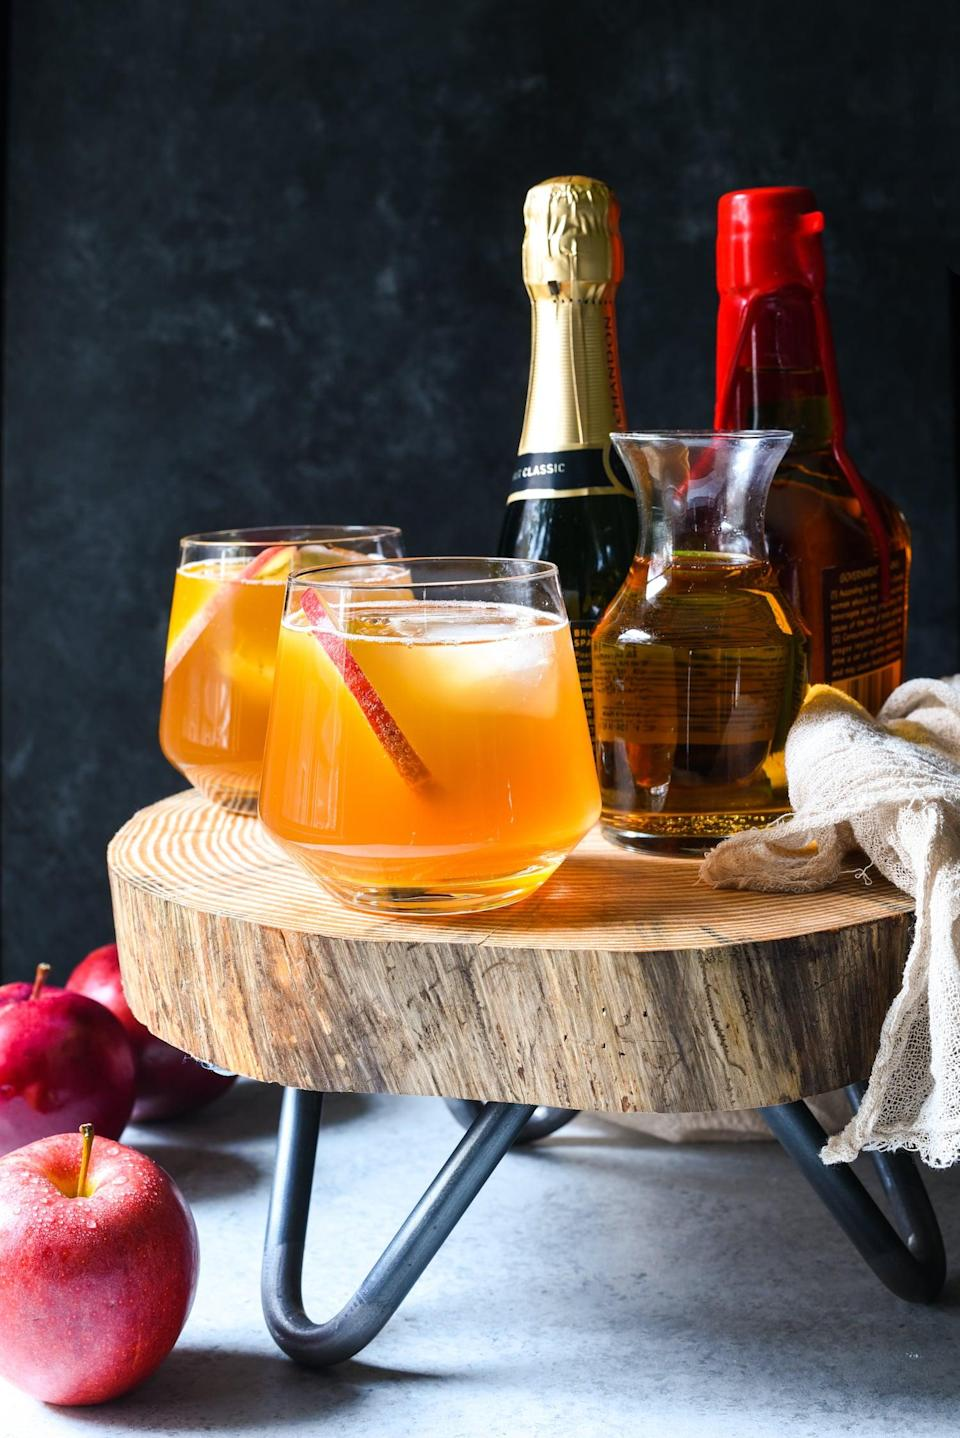 """<p>Add a kick to your apple cider when you whip up this boozy recipe. With only four ingredients (Champagne, apple cider, ginger ale, and bourbon), you'll be making this for more than just Fat Tuesday.</p> <p><strong>Get the recipe</strong>: <a href=""""https://foxeslovelemons.com/bourbon-apple-cider-punch/"""" class=""""link rapid-noclick-resp"""" rel=""""nofollow noopener"""" target=""""_blank"""" data-ylk=""""slk:bourbon apple-cider punch"""">bourbon apple-cider punch</a> </p>"""